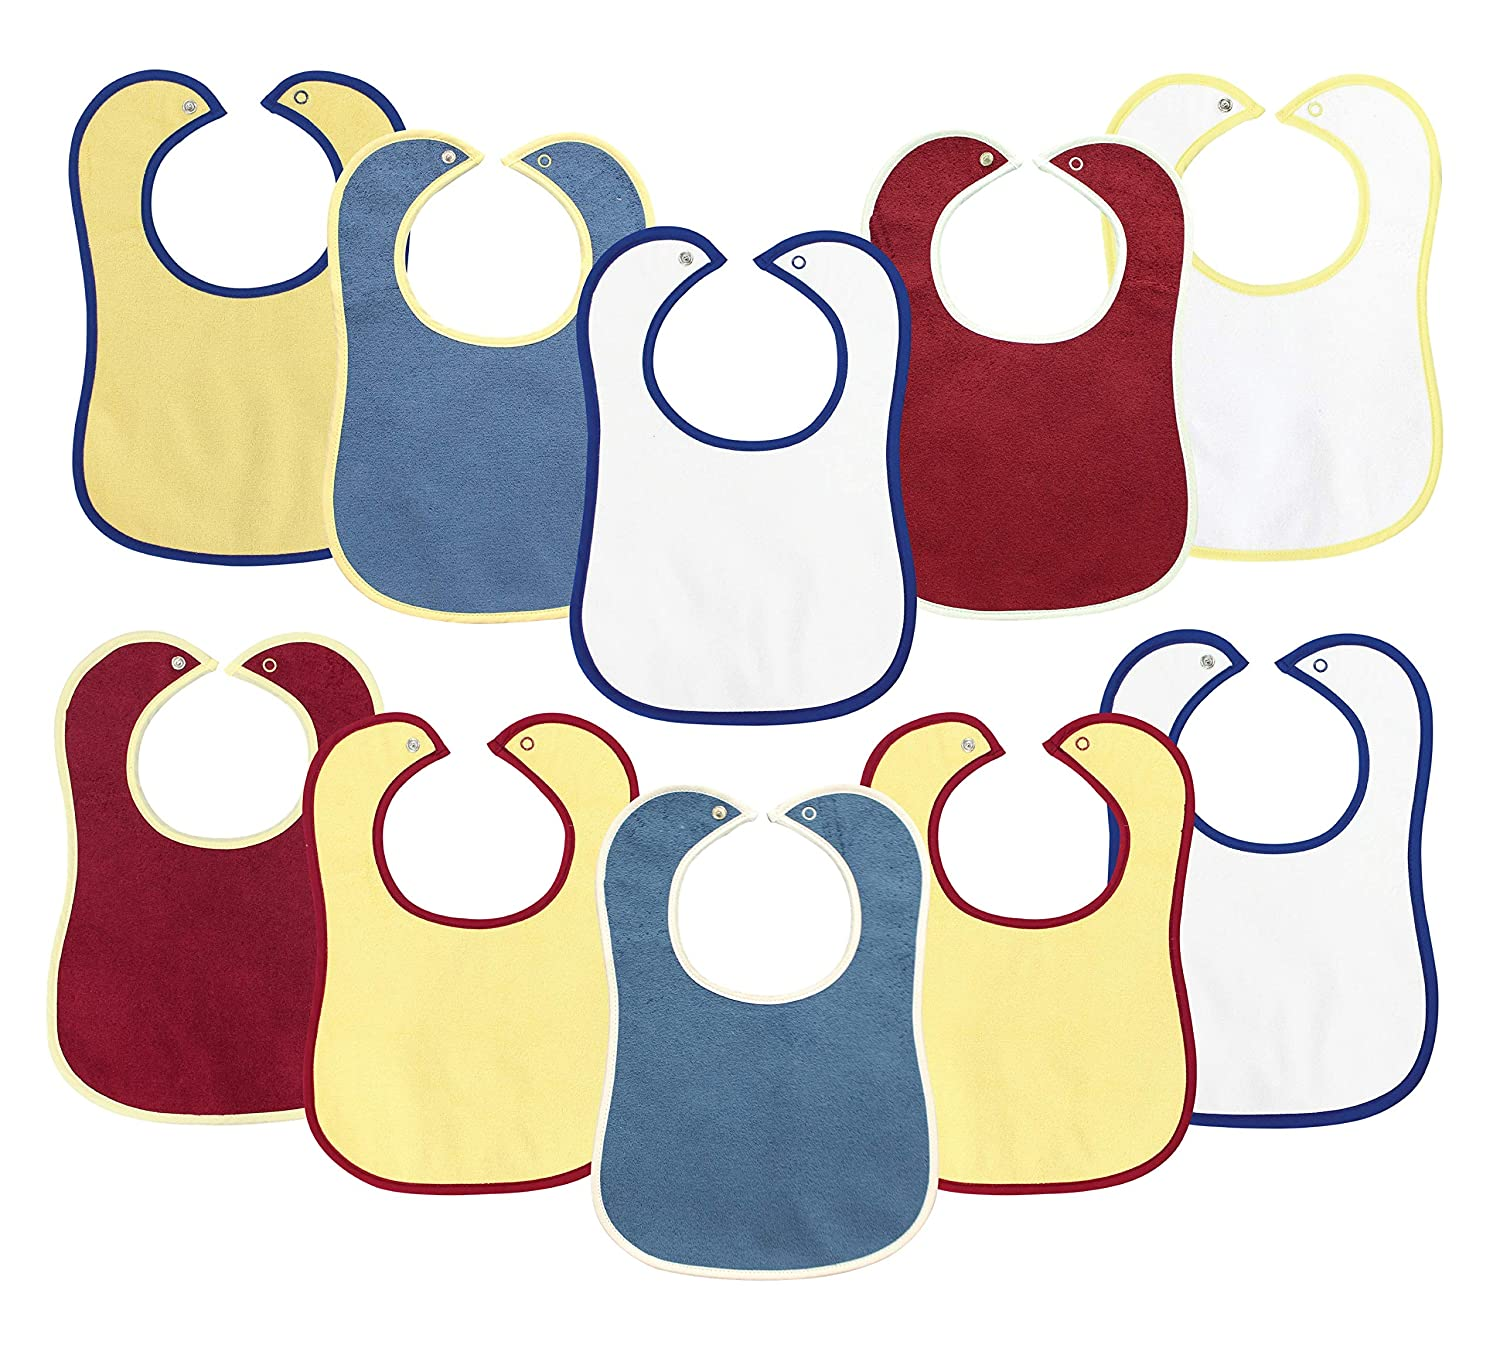 10 Pack Baby Bibs BornCare 3 Layer Drool Waterproof 6-24 Months Bibs, Baby boy or Girl Super Absorbent Bibs with snap for Drooling and Teething, 100% Cotton 13x9, Baby Shower Gift Set 91MbmwsBp-L